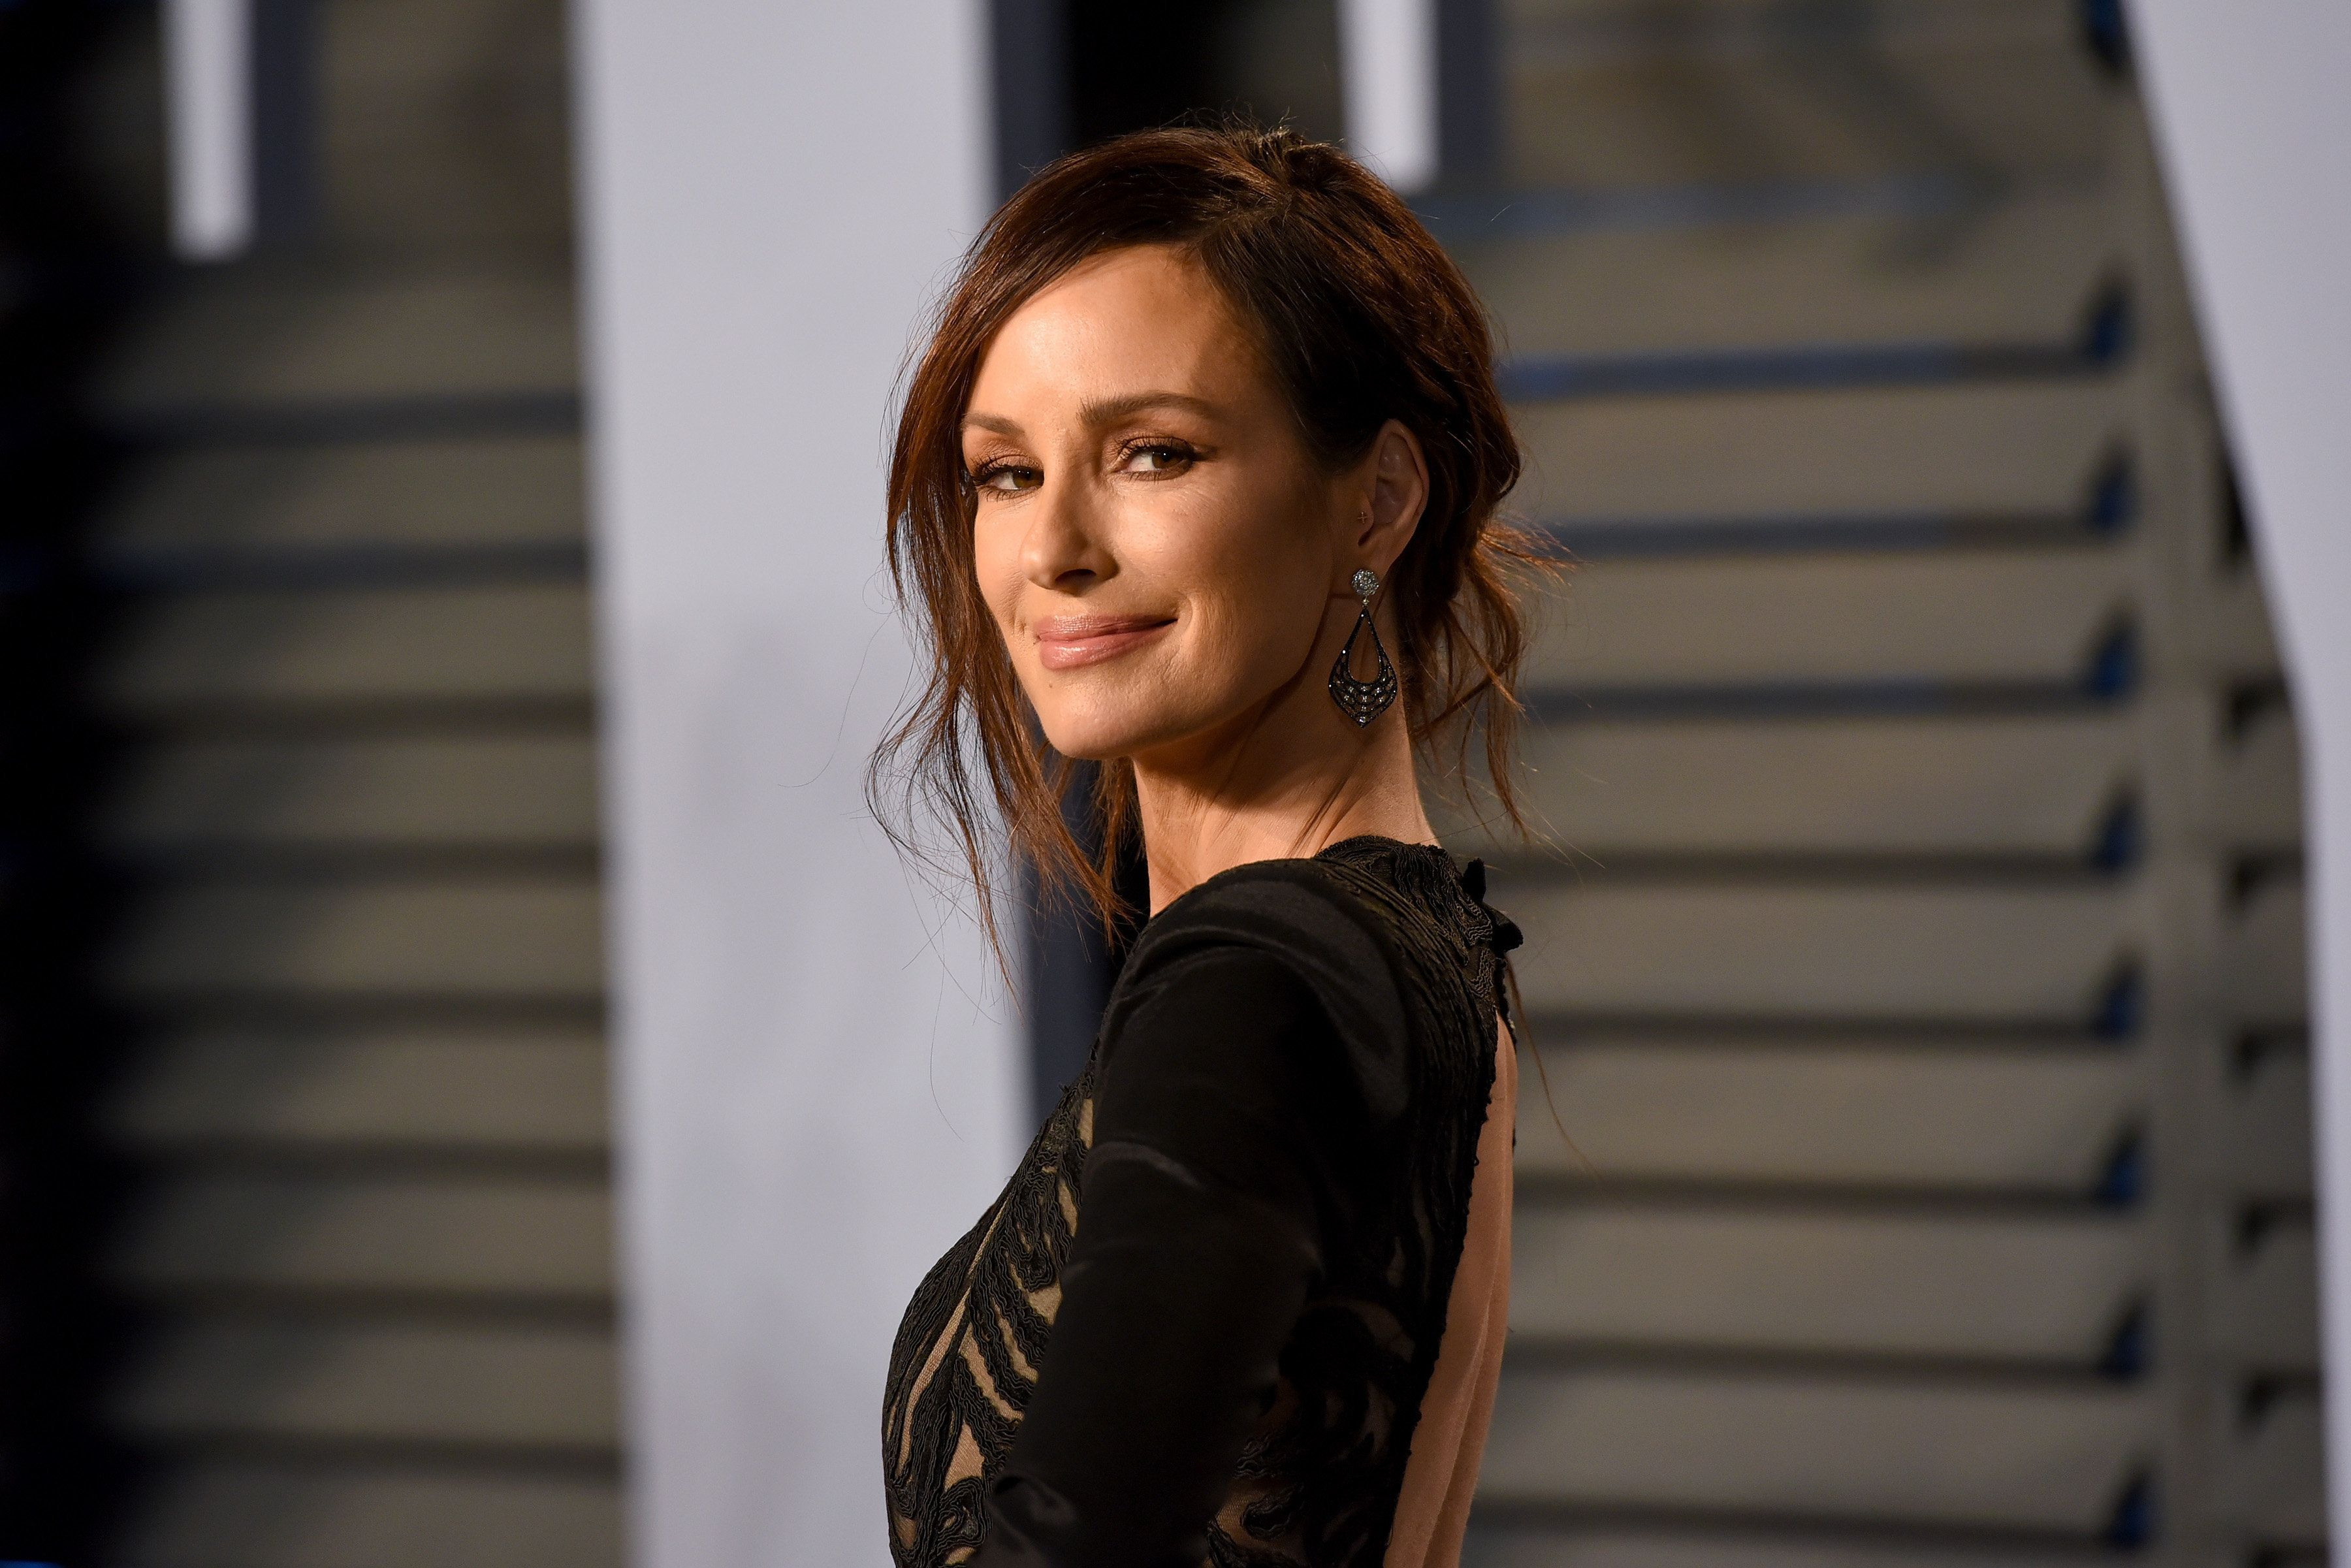 Catt Sadler has become an advocate for equal pay. Here, she attends the 2018 Vanity Fair Oscar Party on March 4, 2018, in Bev